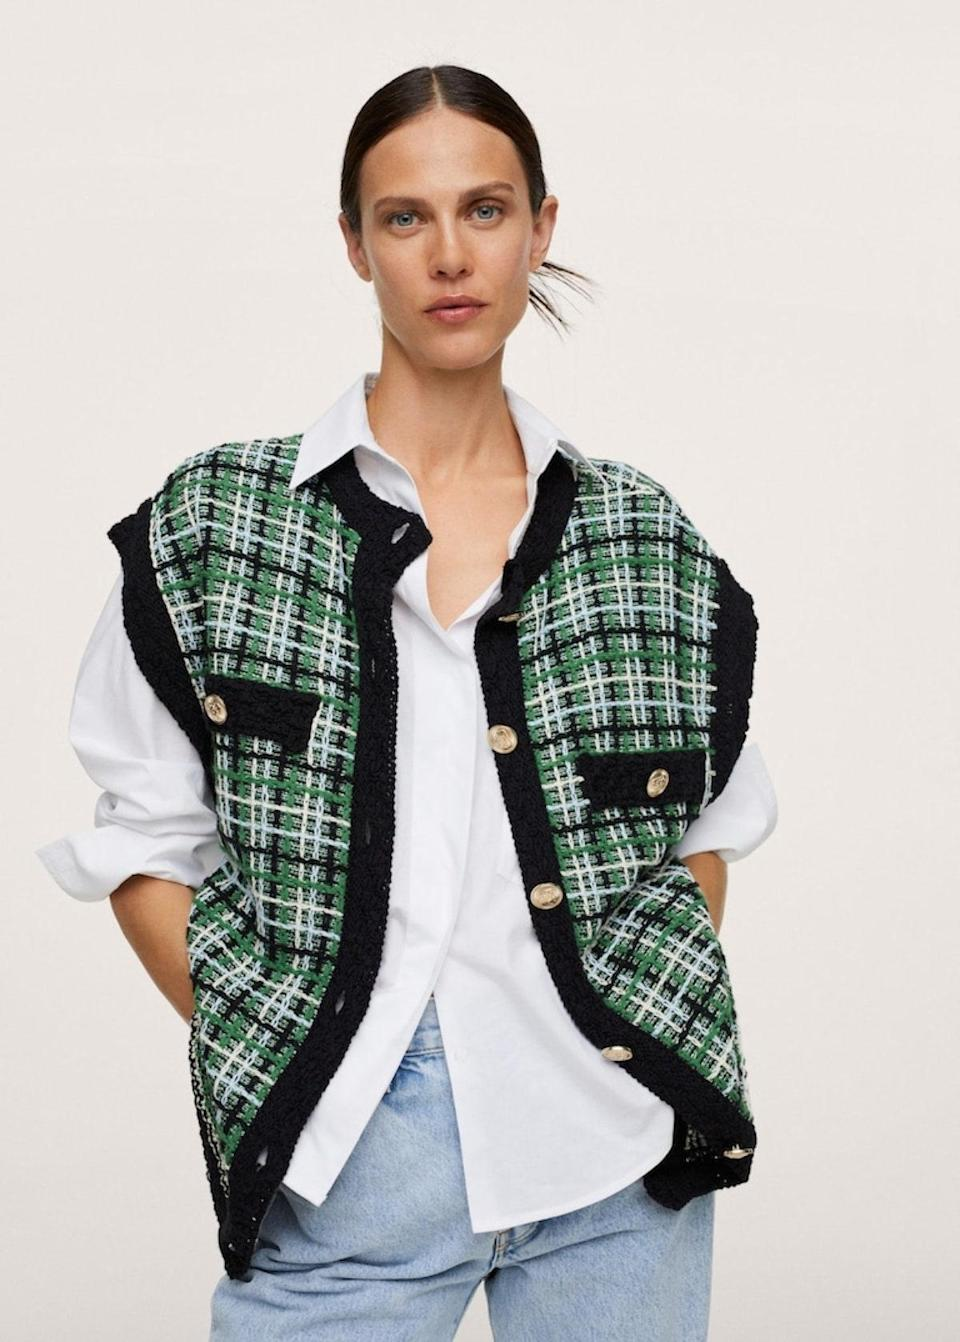 """There's something about a tweed <a href=""""https://www.glamour.com/gallery/sweater-vests-for-women?mbid=synd_yahoo_rss"""" rel=""""nofollow noopener"""" target=""""_blank"""" data-ylk=""""slk:sweater vest"""" class=""""link rapid-noclick-resp"""">sweater vest</a> layered over a <a href=""""https://www.glamour.com/gallery/best-white-button-down-shirts-women?mbid=synd_yahoo_rss"""" rel=""""nofollow noopener"""" target=""""_blank"""" data-ylk=""""slk:white button-down"""" class=""""link rapid-noclick-resp"""">white button-down</a> that looks downright <em>cool</em>. $100, Mango. <a href=""""https://shop.mango.com/us/women/cardigans-and-sweaters-cardigans/tweed-oversize-vest_17044060.html"""" rel=""""nofollow noopener"""" target=""""_blank"""" data-ylk=""""slk:Get it now!"""" class=""""link rapid-noclick-resp"""">Get it now!</a>"""